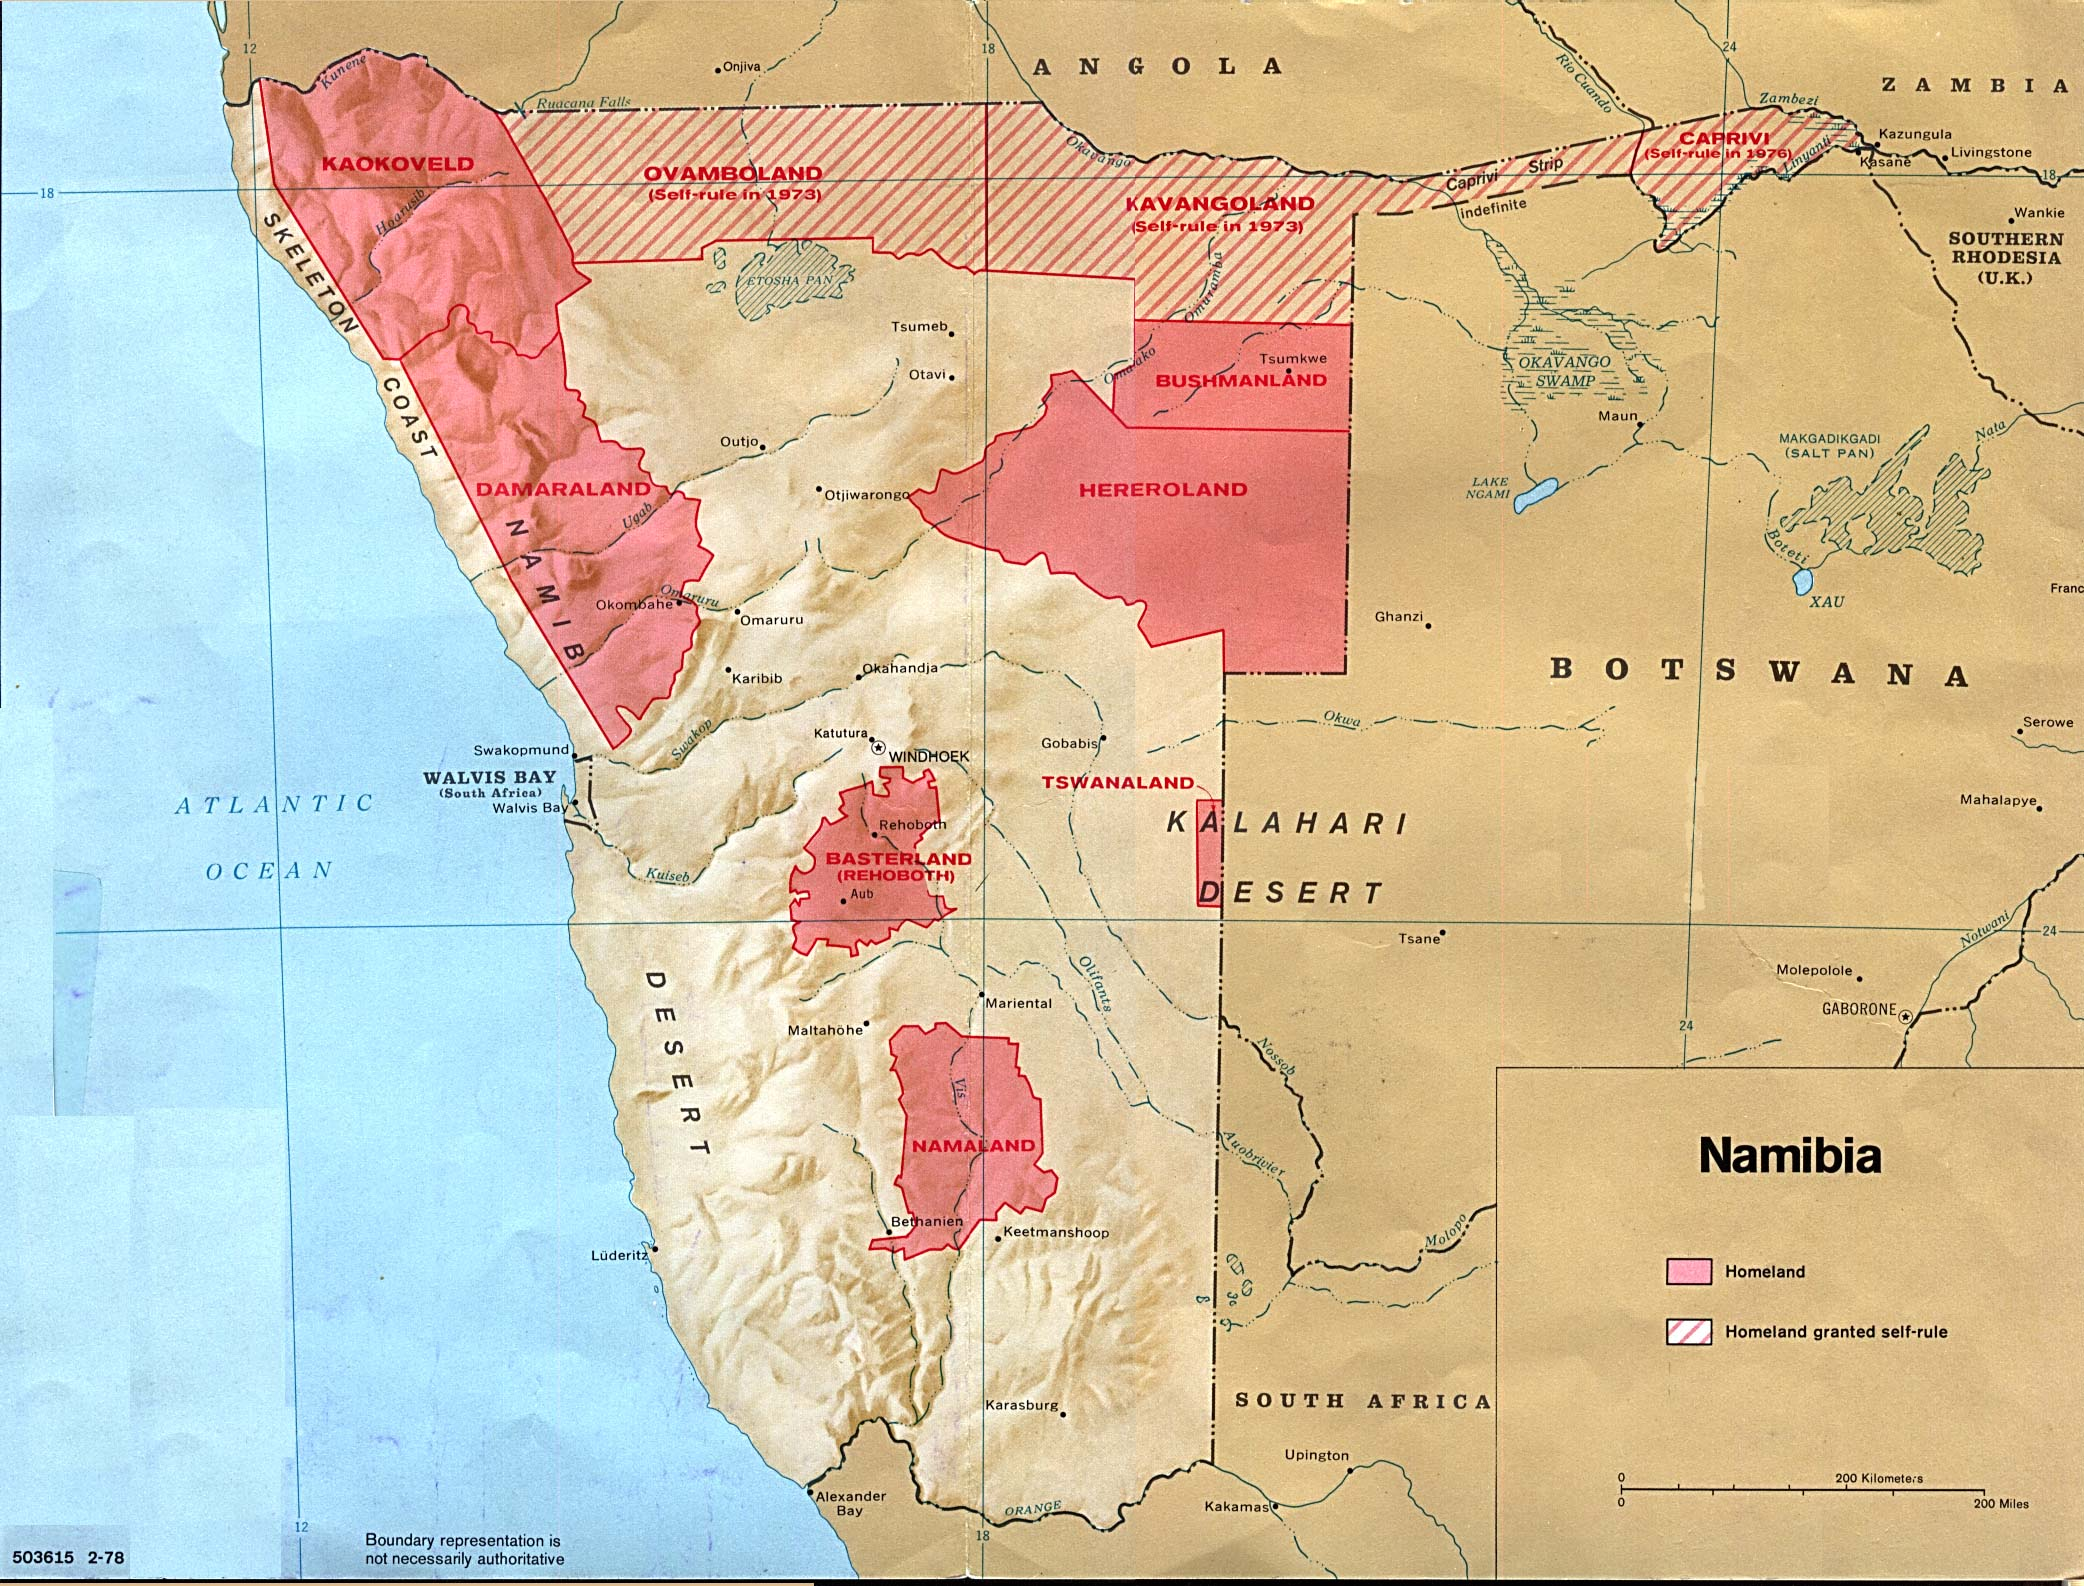 Map of the black homelands in Namibia as of 1976